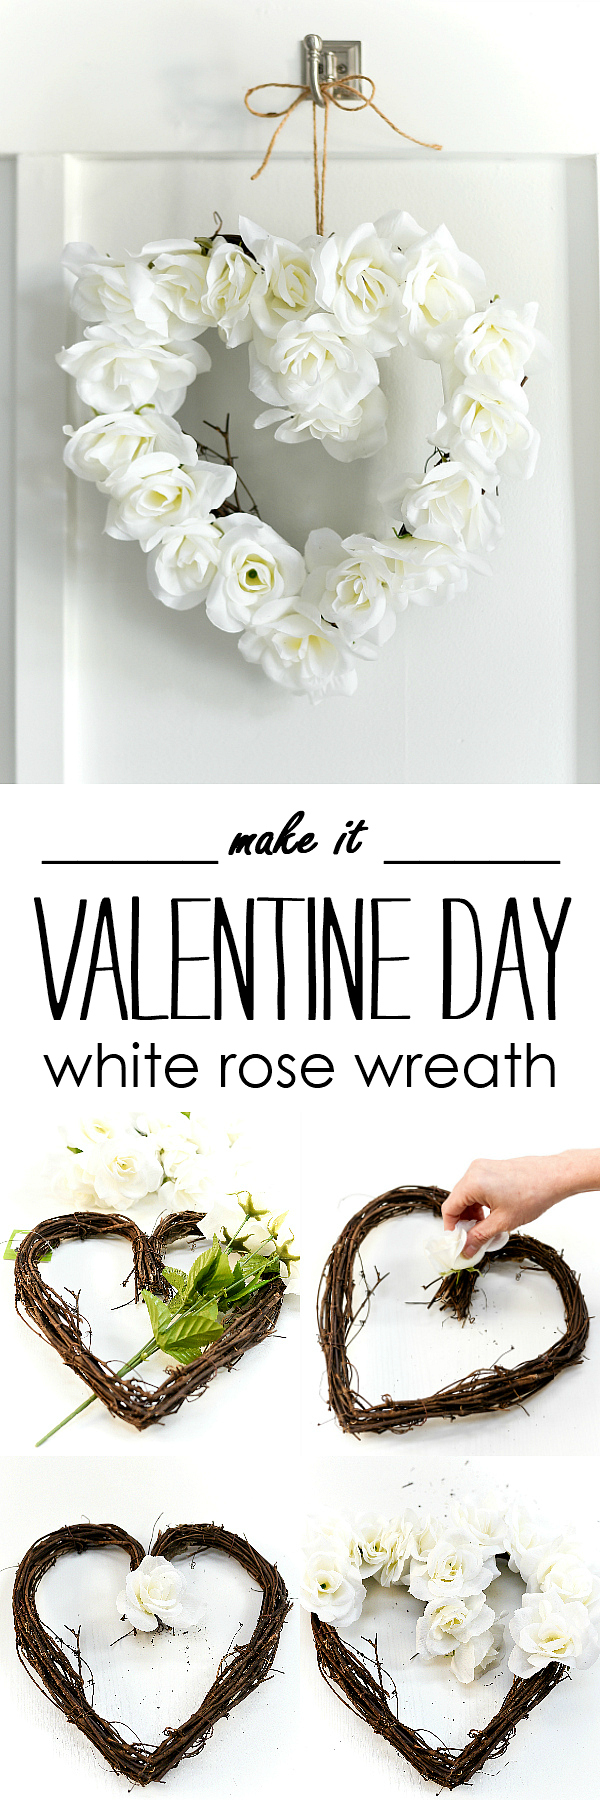 White Rose Valentine Heart Wreath - Neutral Valentine Decor Ideas - White Rose Heart Wreath